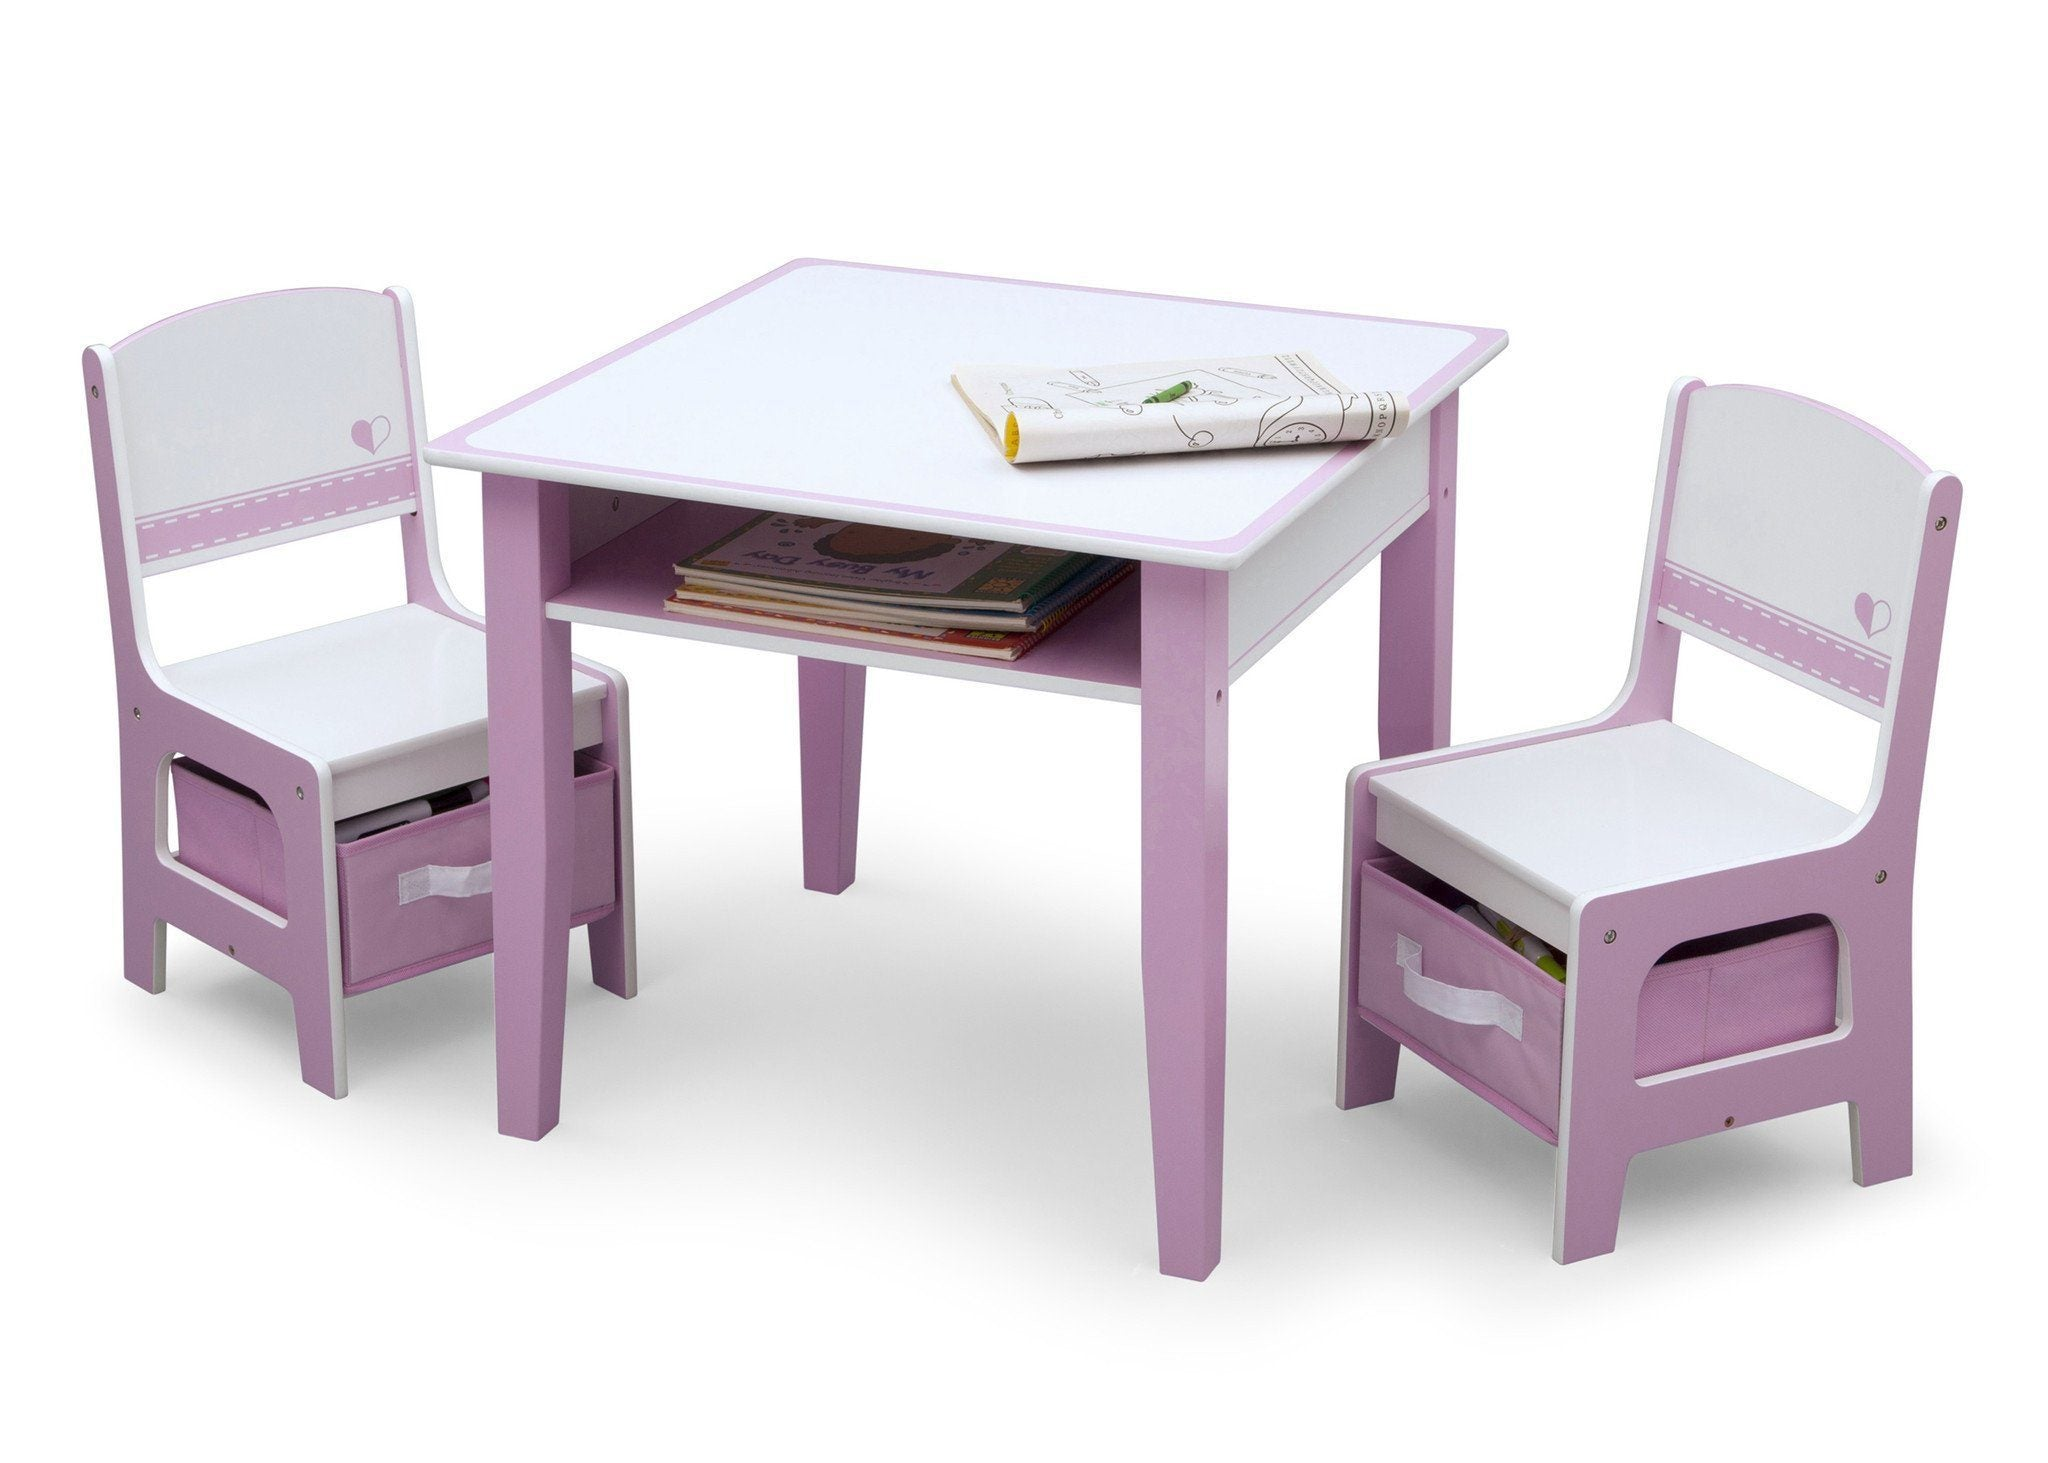 ... Pink And White Jack And Jill Storage Table U0026 Chair Set Style 1, Left  View